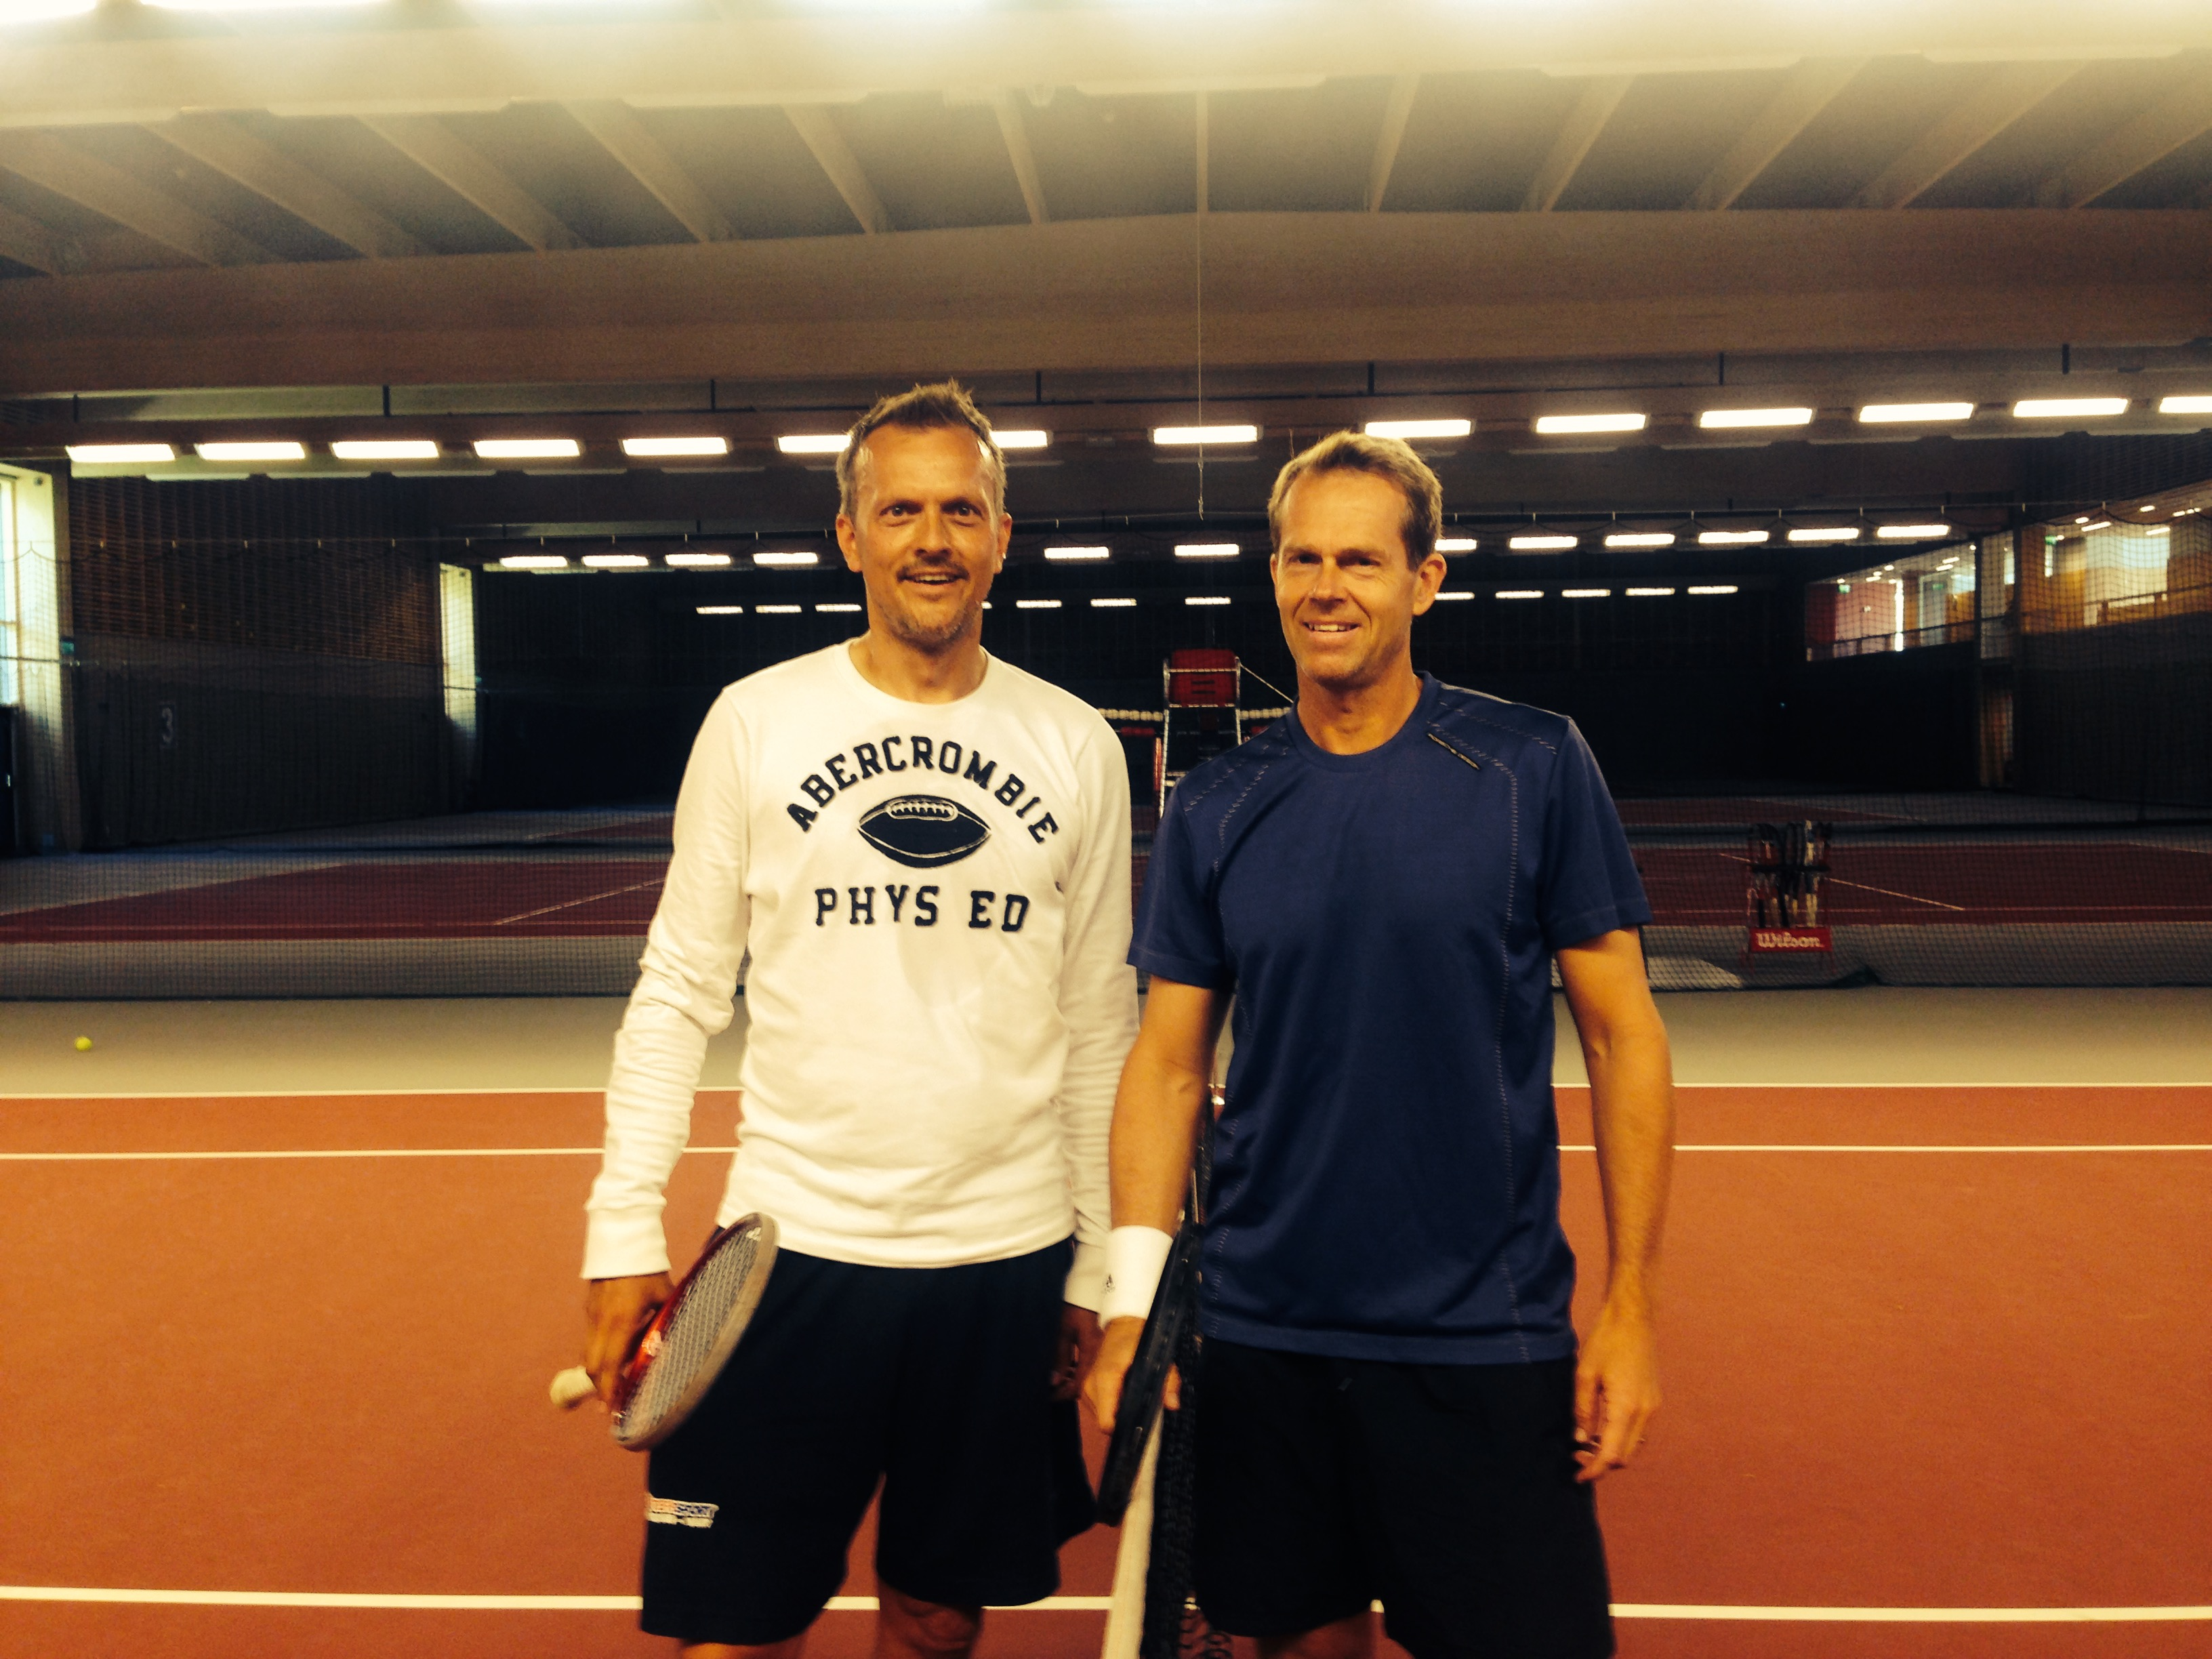 Thomas Schouboe, Stefan Edberg